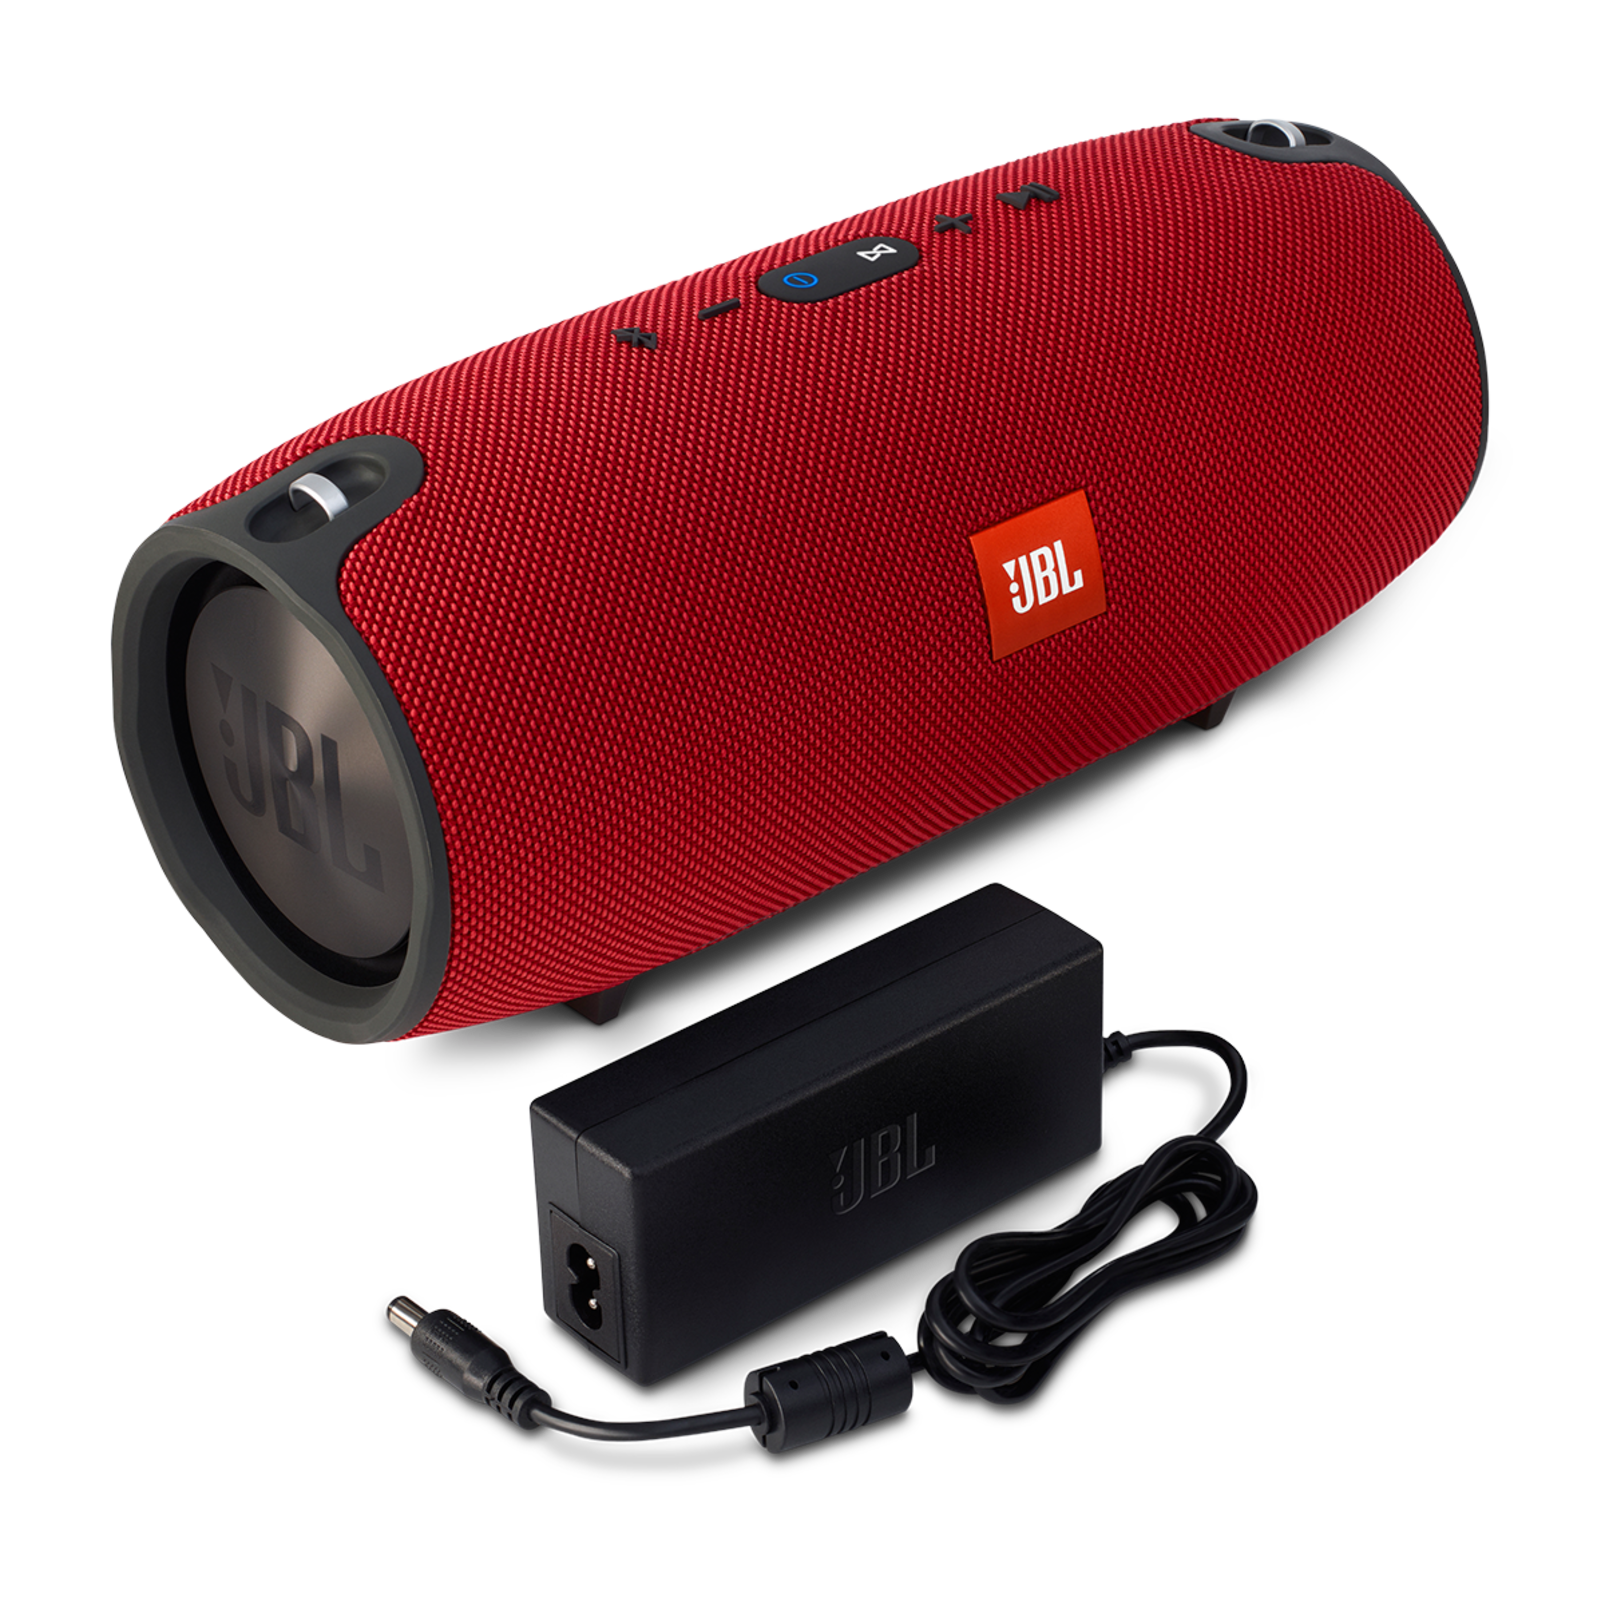 JBL Xtreme - Red - Splashproof portable speaker with ultra-powerful performance - Detailshot 1